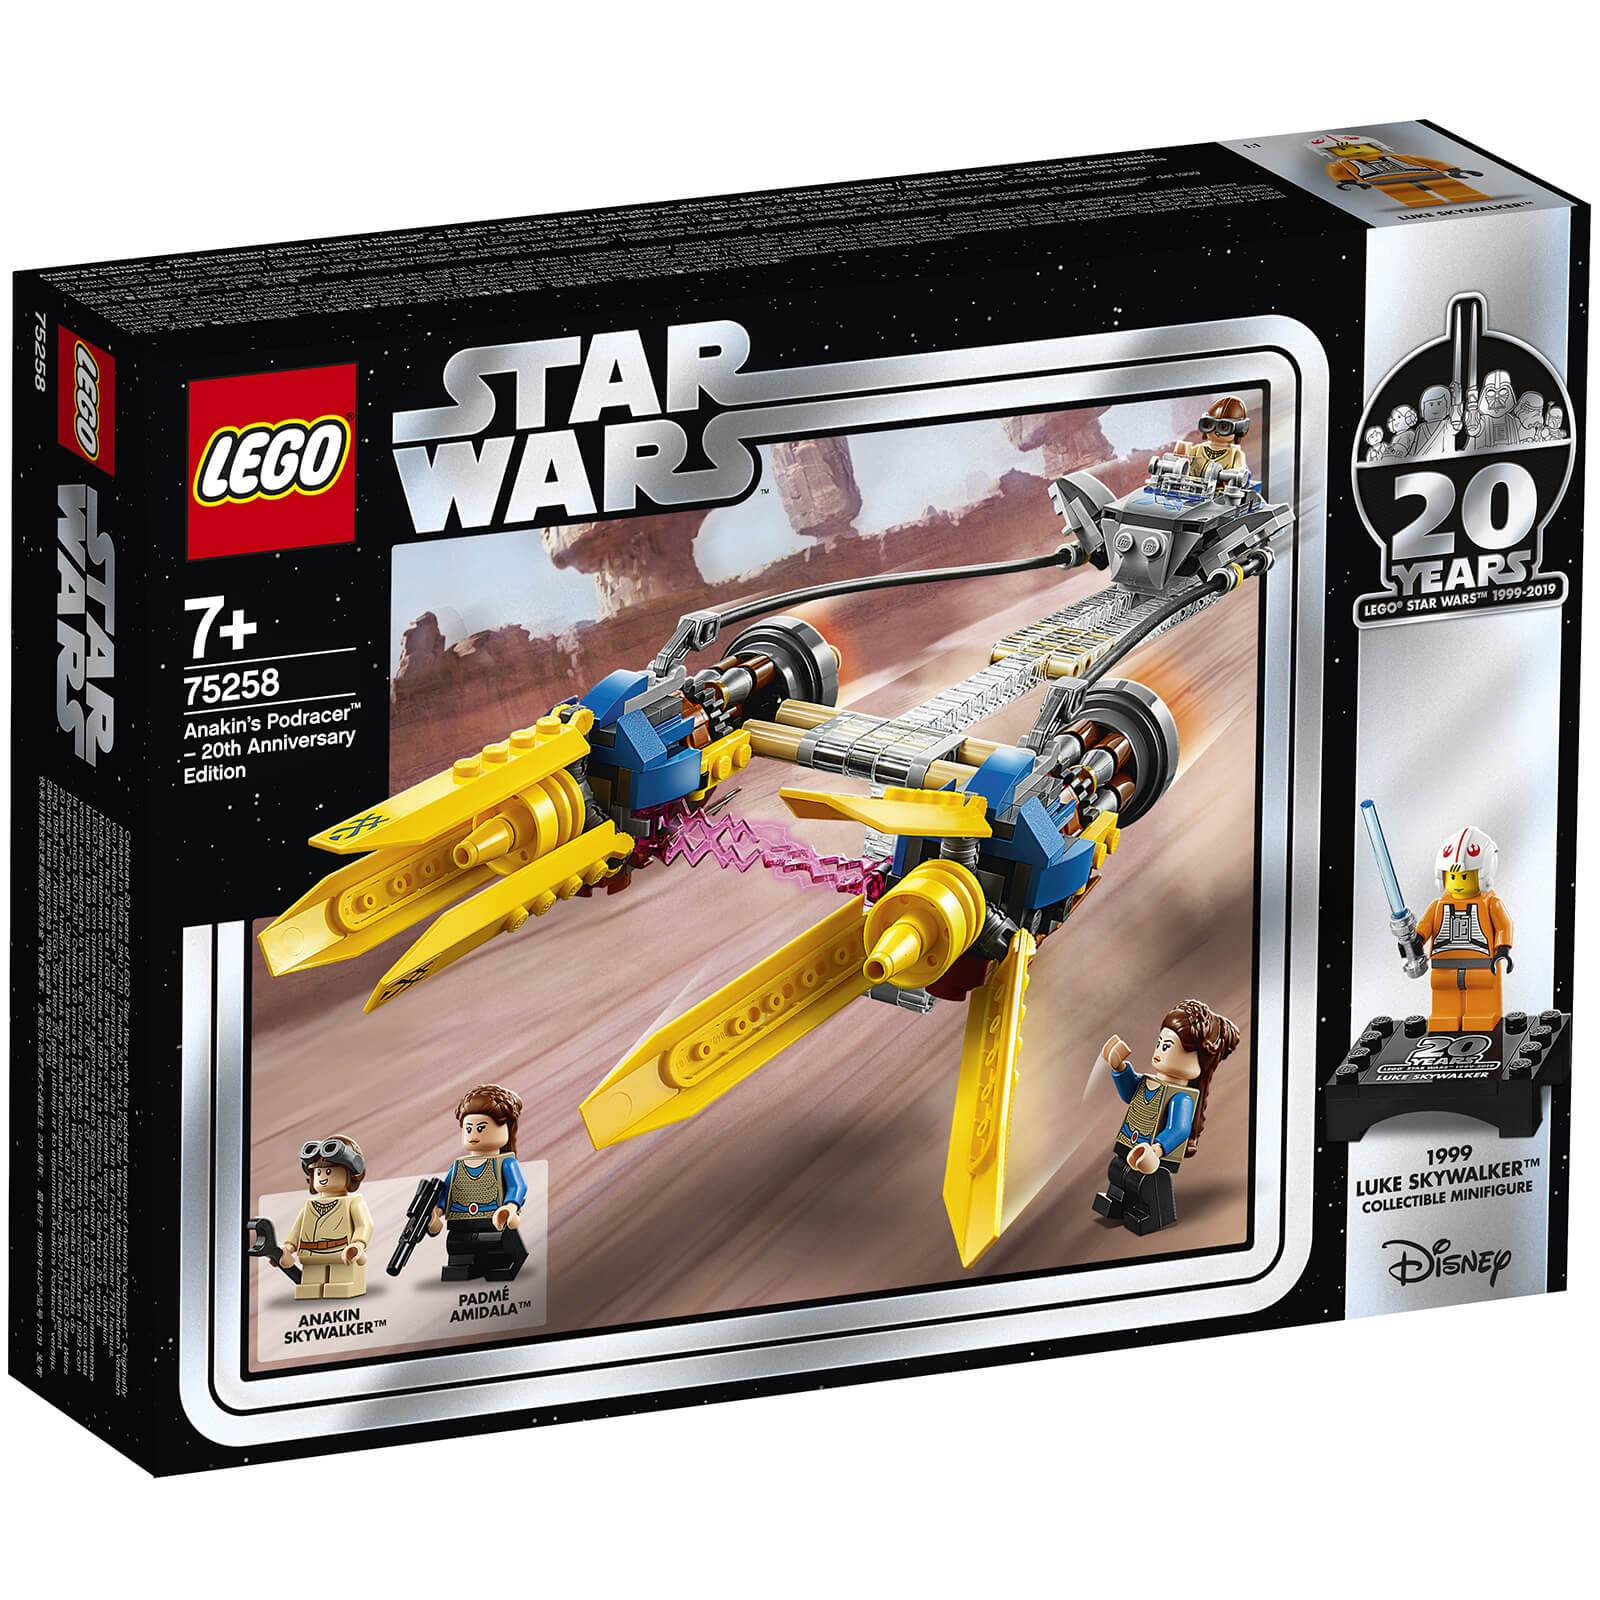 Lego Star Wars Classic: Anakin's Podracer - 20th Anniversary Edition (75258)